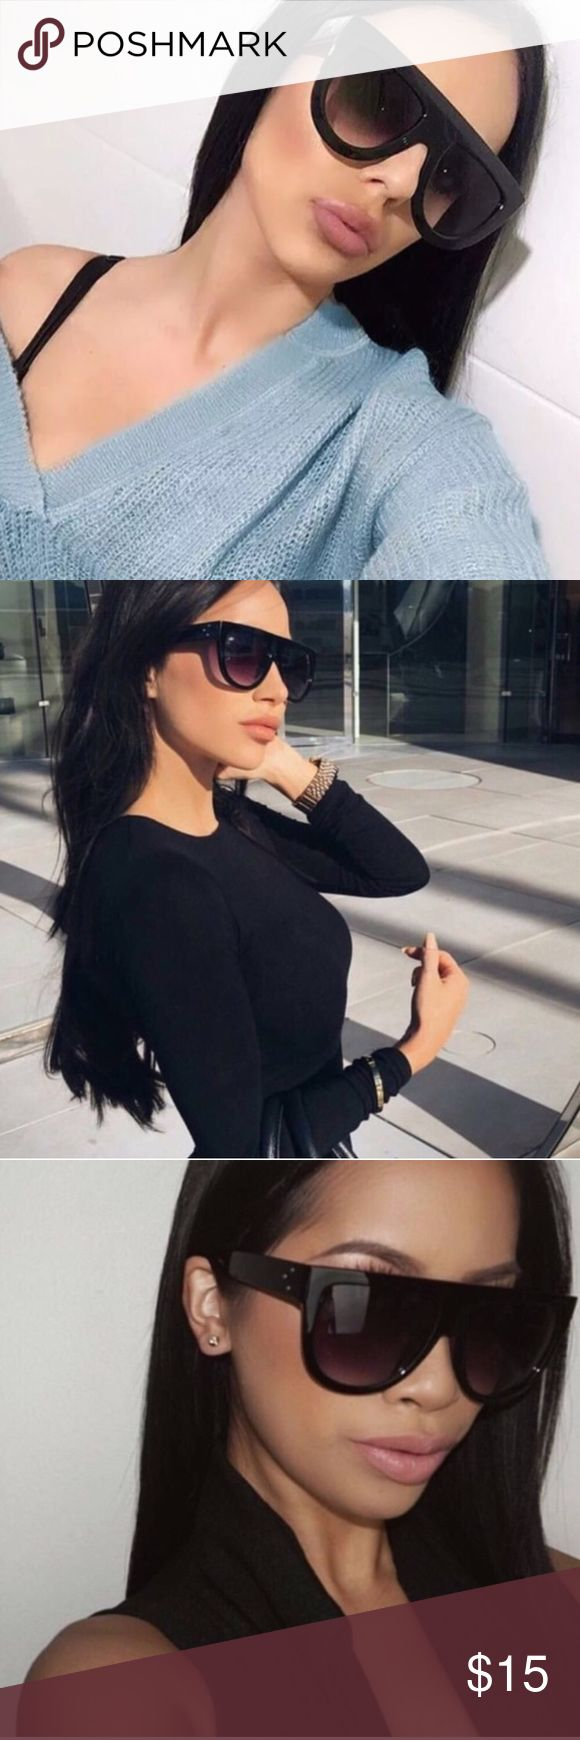 """Coming Soon 💕Luxury Flat Top Sunglasses Will be available next week ❤️   * The """"It"""" Sunnies of the season * Features three dots on the side * Plastic based frame, metal hinges, and UV400 protected lenses * Lens Width: 56mm * Nose Bridge: 16mm * Lens Height: 49mm * Total Width: 142mm Accessories Sunglasses"""